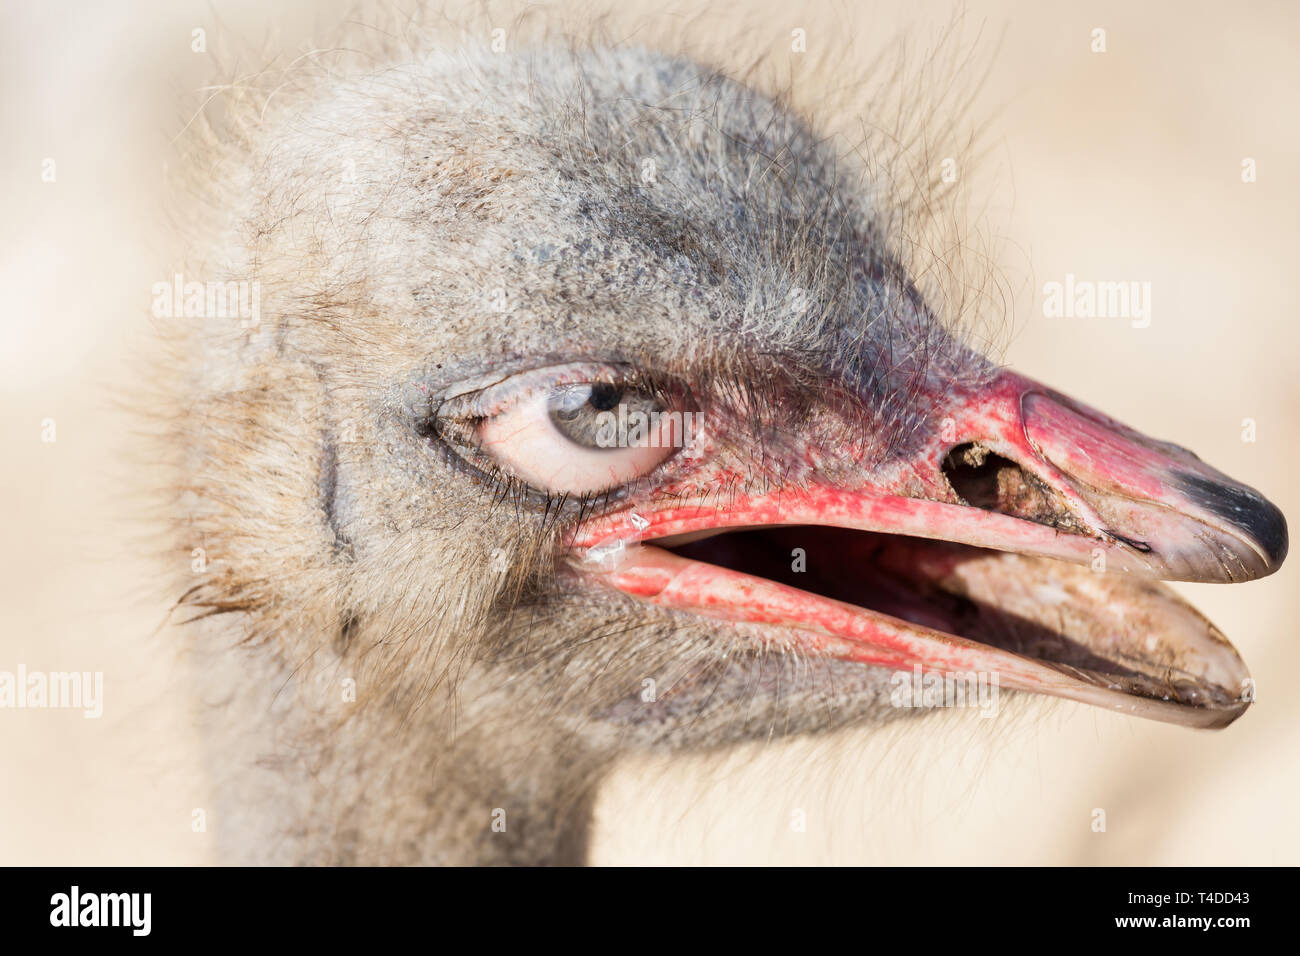 Portrait of an ostrich head with human eyes - Photoshop composing - Stock Image